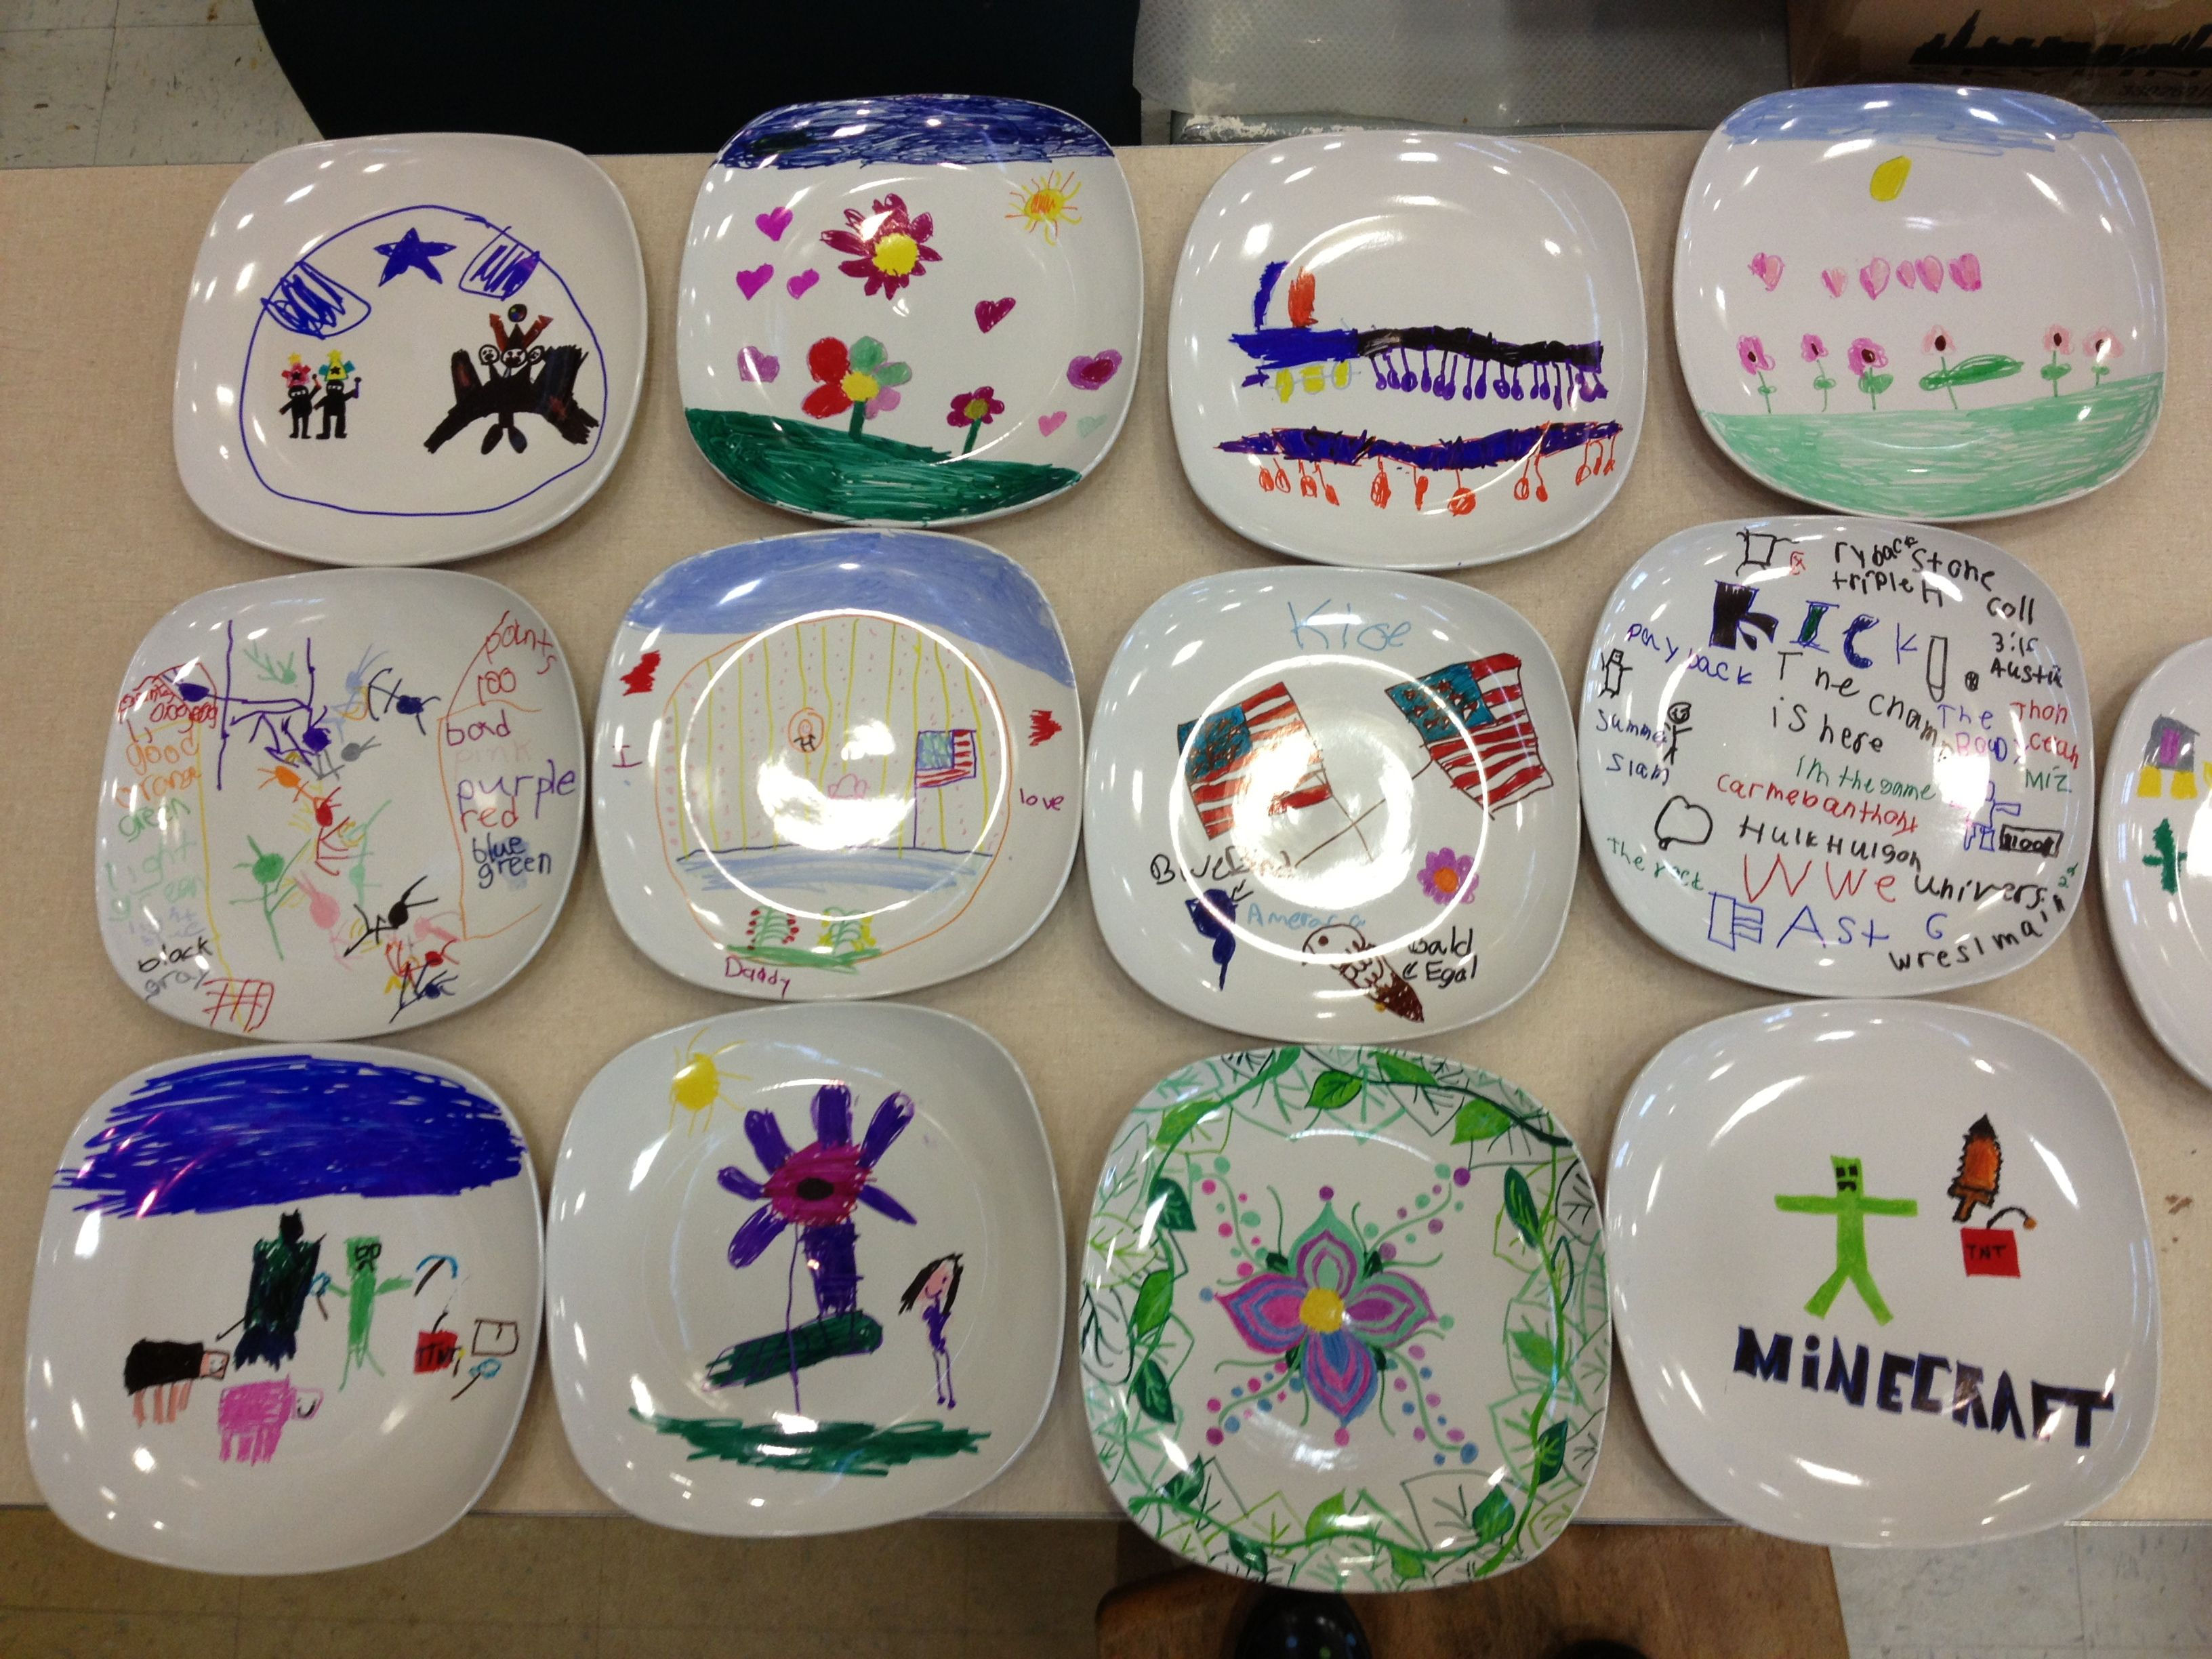 Ceramic plates decorated with Sharpie markers! If you bake them in the oven for 30minutes at 350 and let them cool completely you can wash them! & Ceramic plates decorated with Sharpie markers! If you bake them in ...